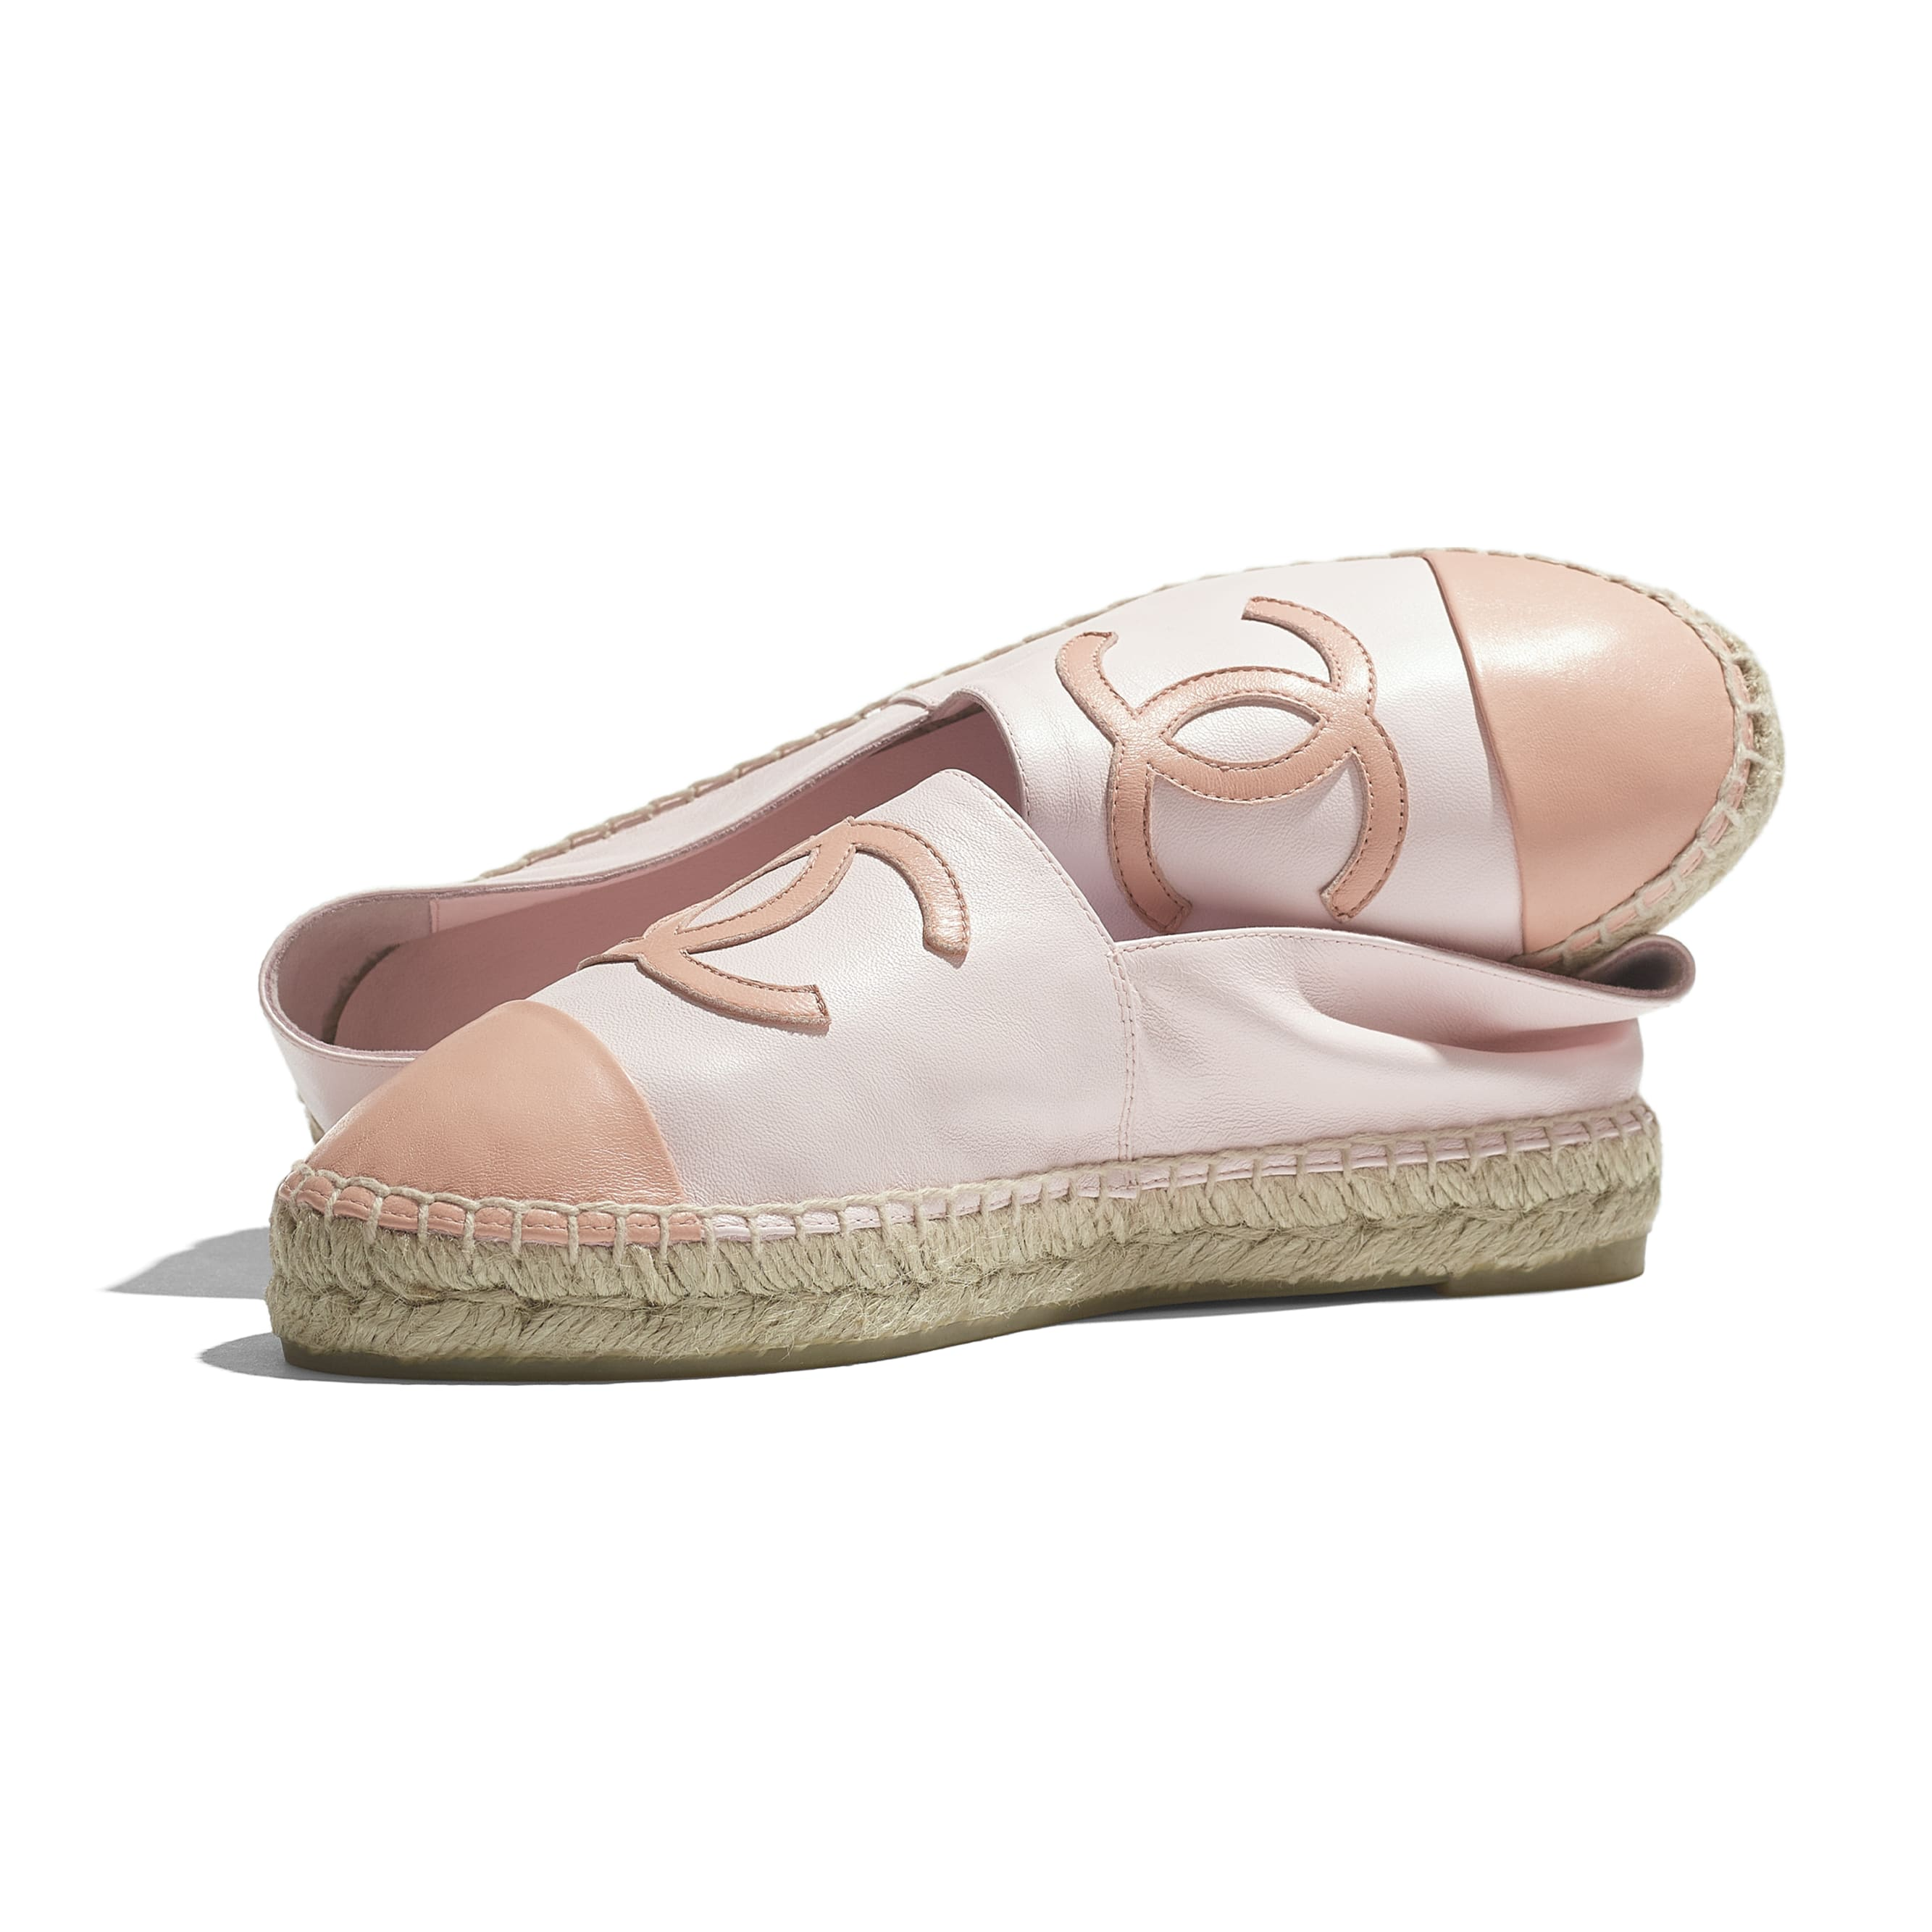 Espadrilles - Light Pink - Lambskin - CHANEL - Extra view - see standard sized version